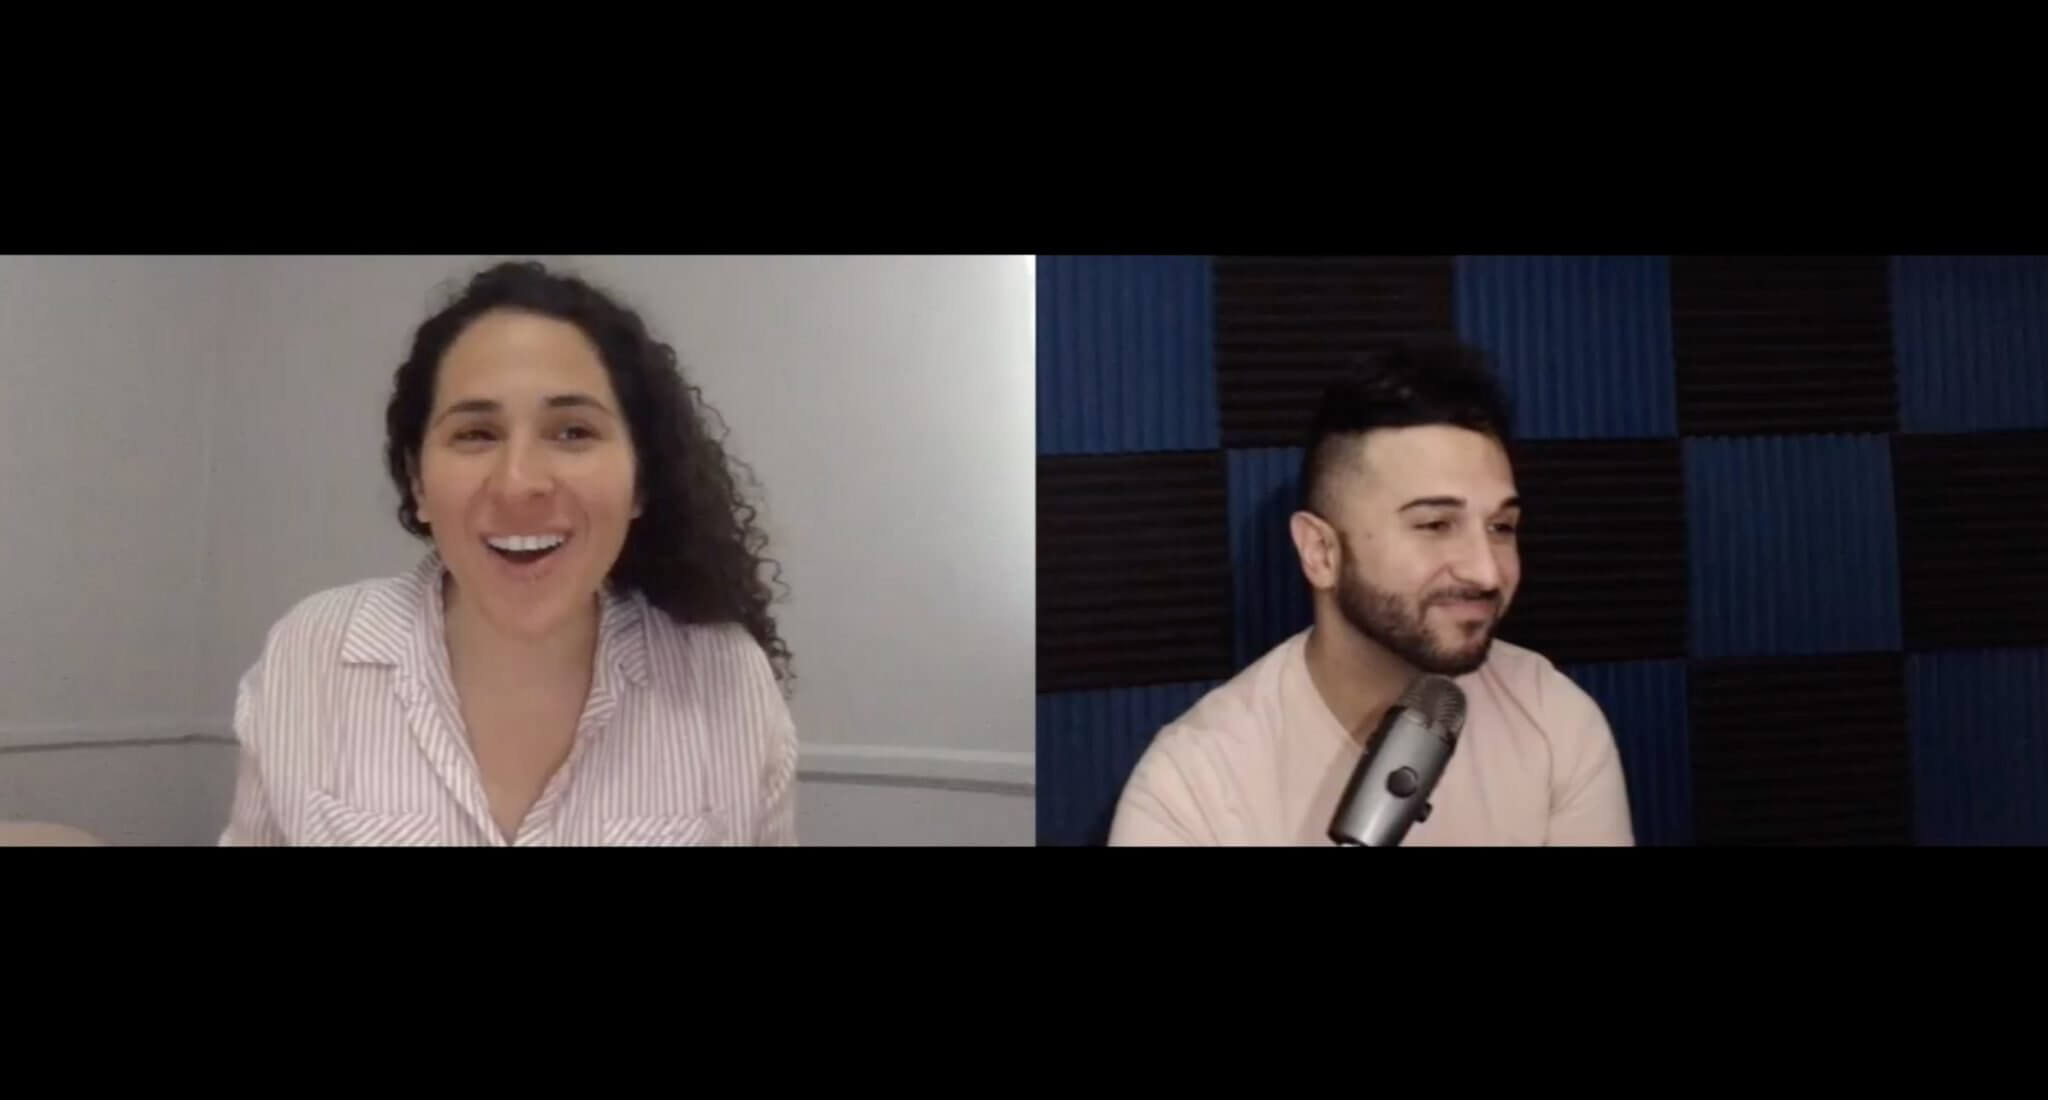 Karla - WhatWouldKarlaSay - Build & Inspire Podcast - Business Stories Meant to Inspire